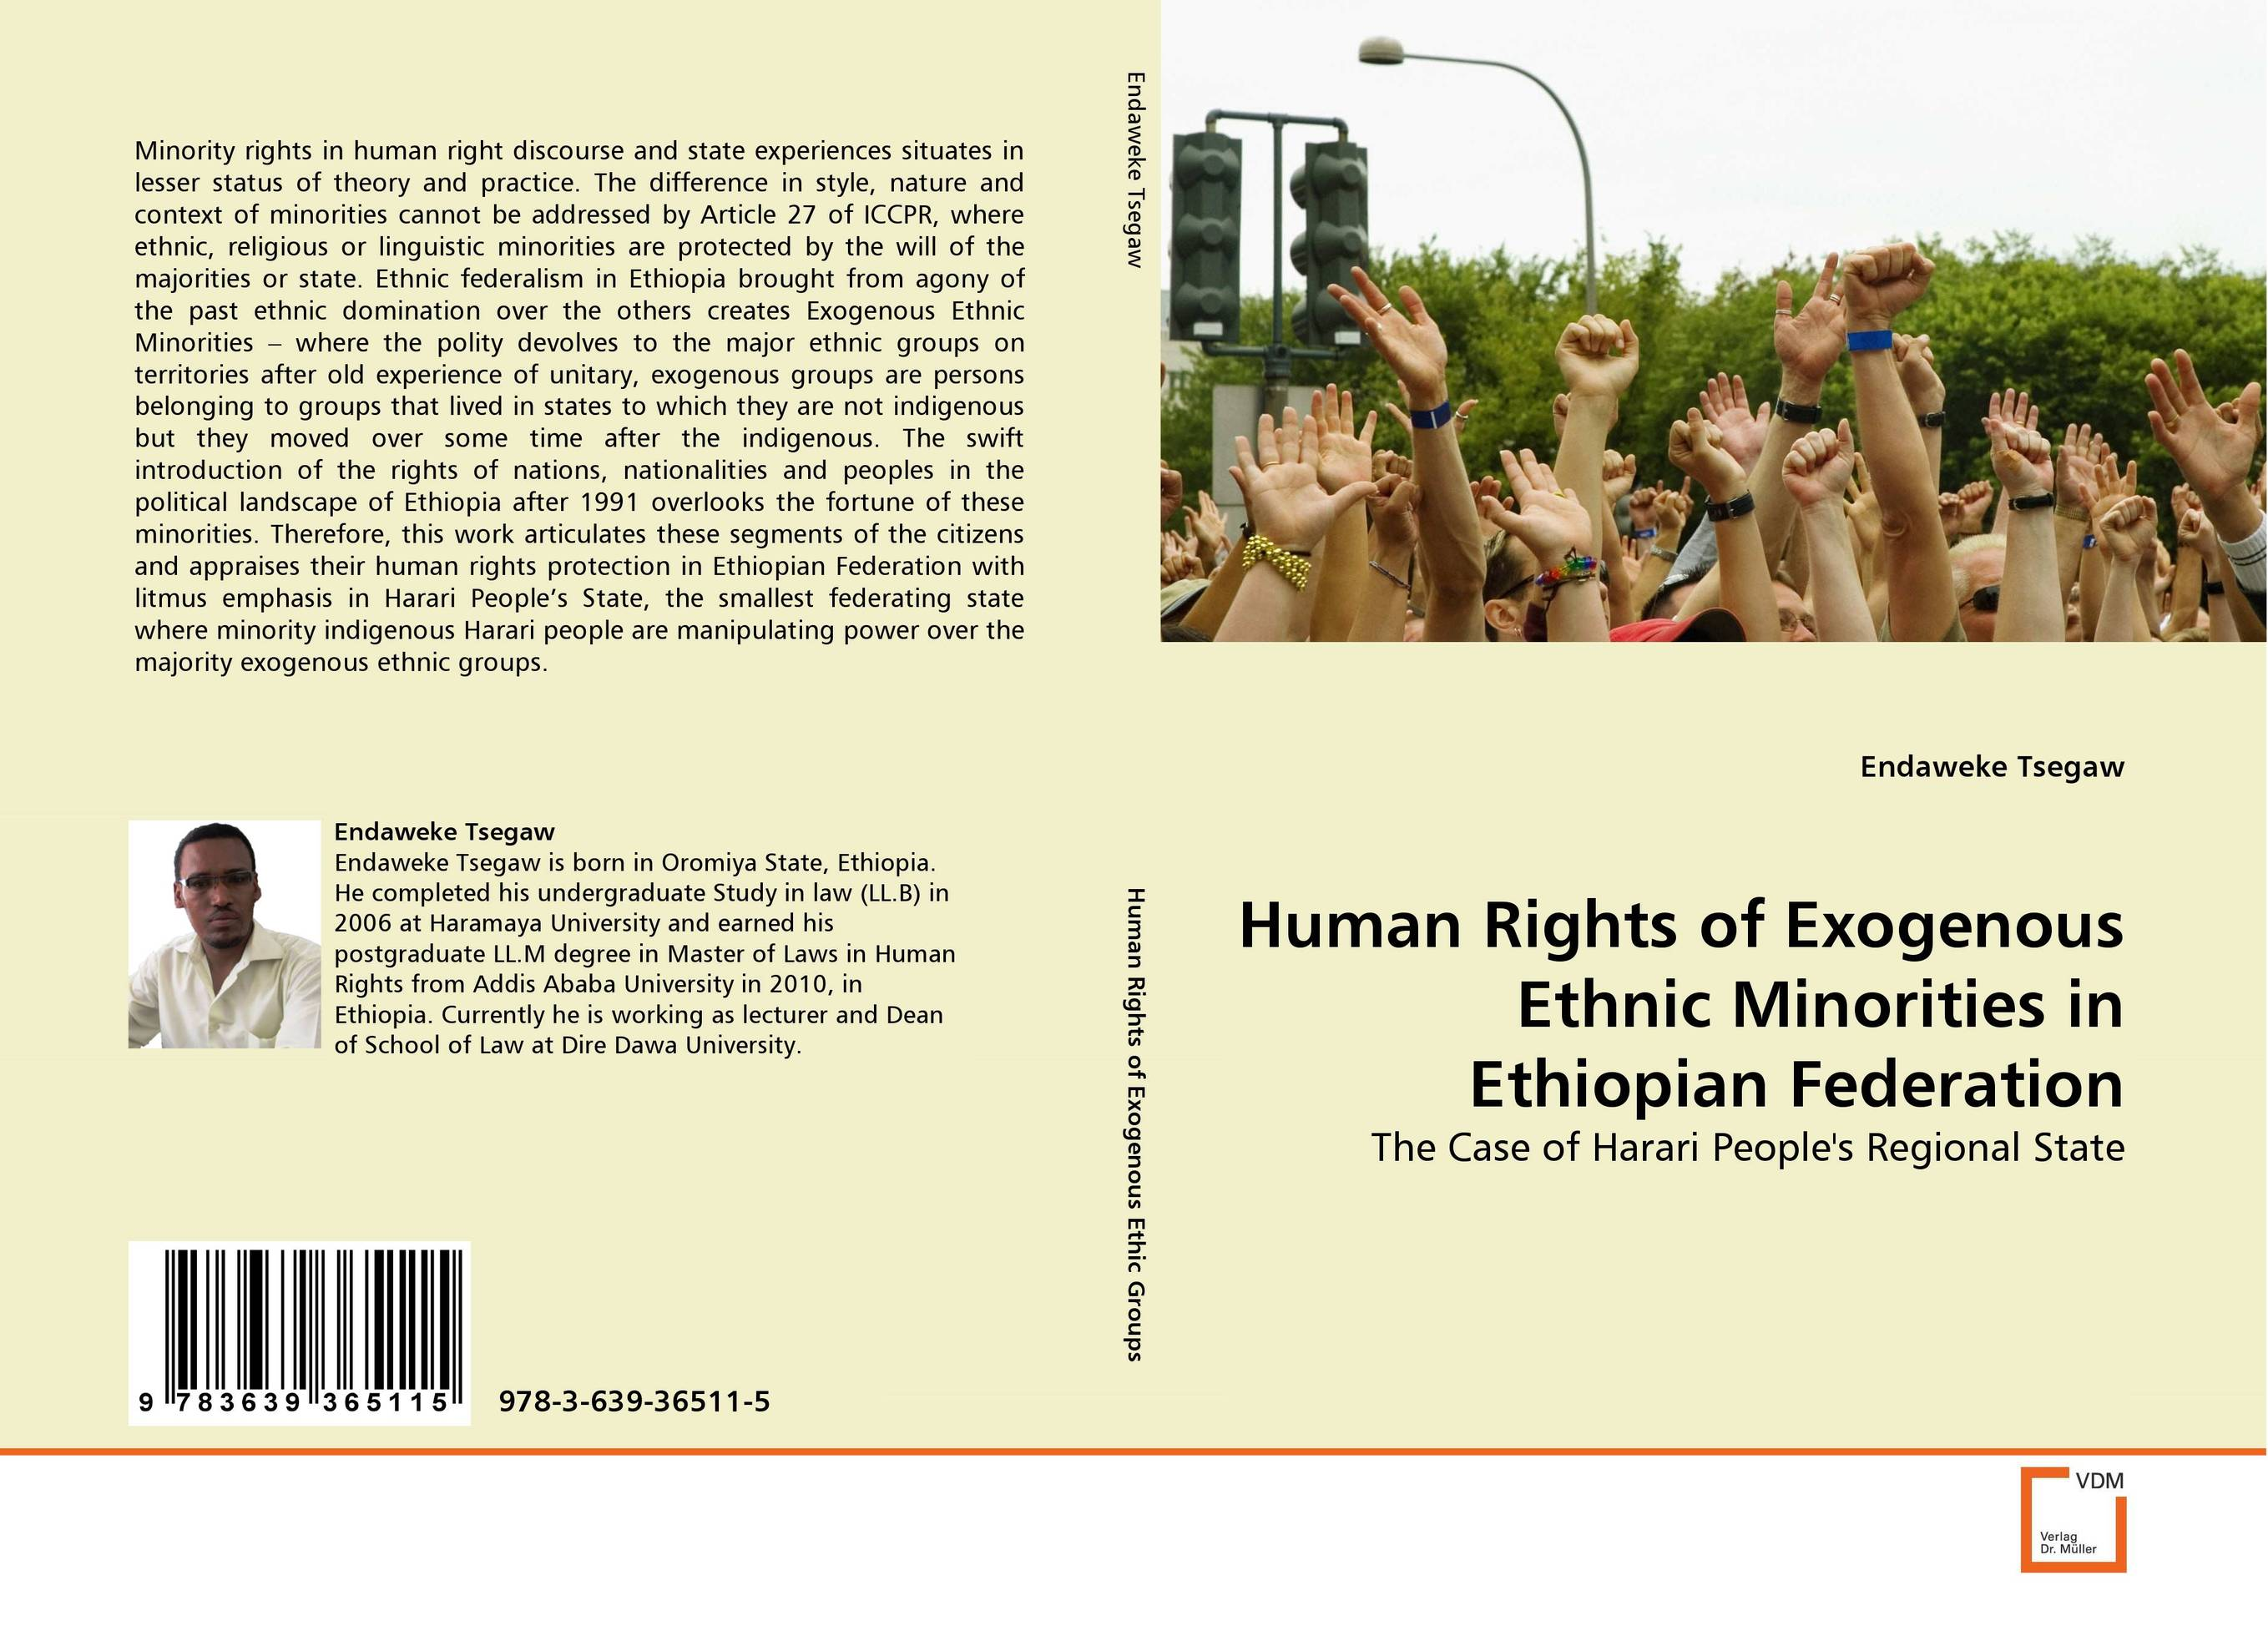 Human Rights of Exogenous Ethnic Minorities in Ethiopian Federation caravan caravan live in concert at metropolis studios london cd dvd